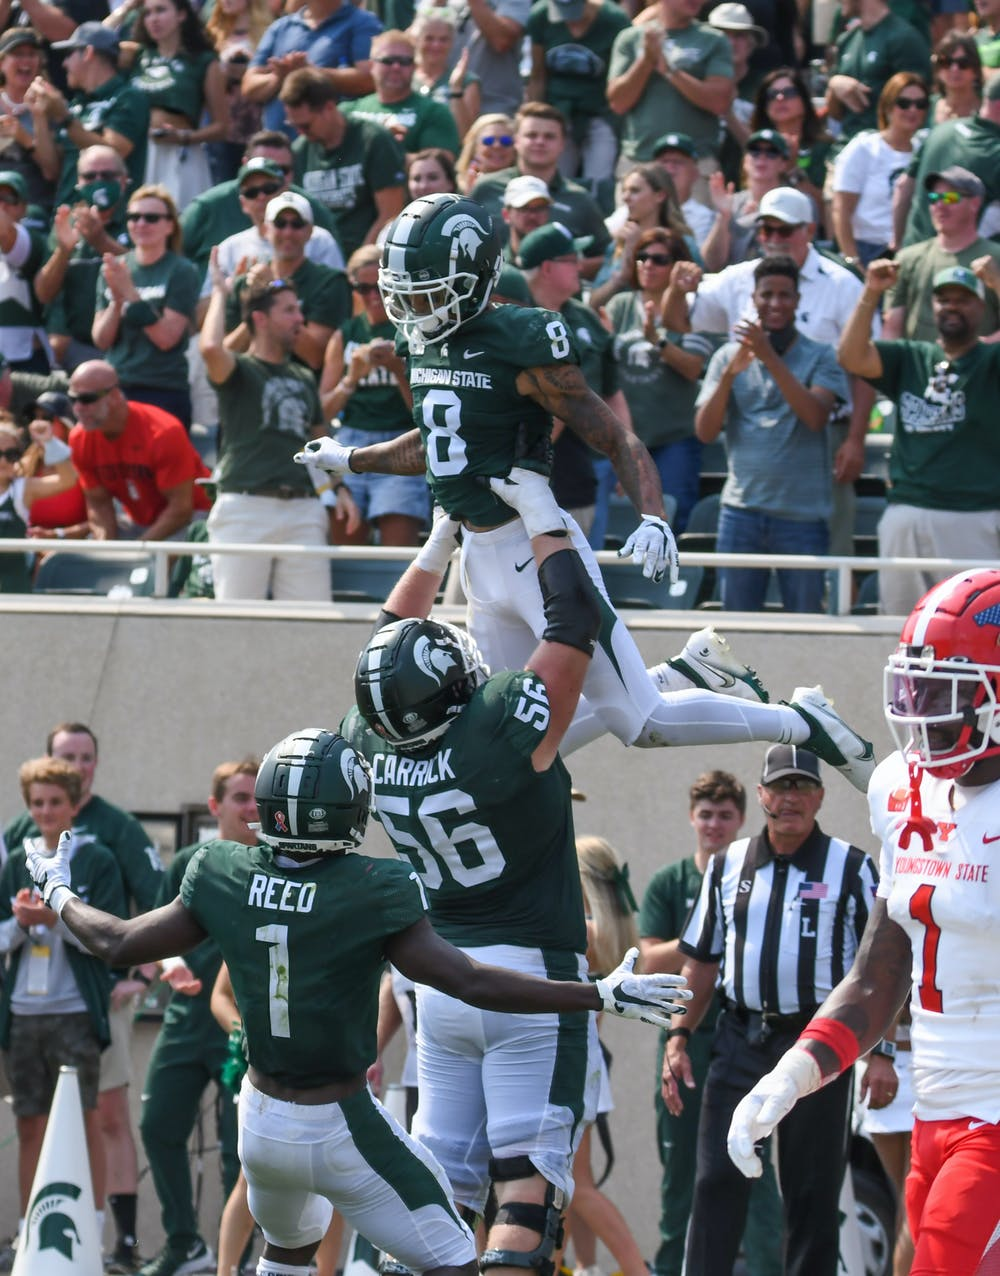 <p>Celebrations ensued as Nailor scores the final touchdown of the game, bringing Michigan State to 42-14 against the Youngstown State Penguins on September 11, 2021. </p>